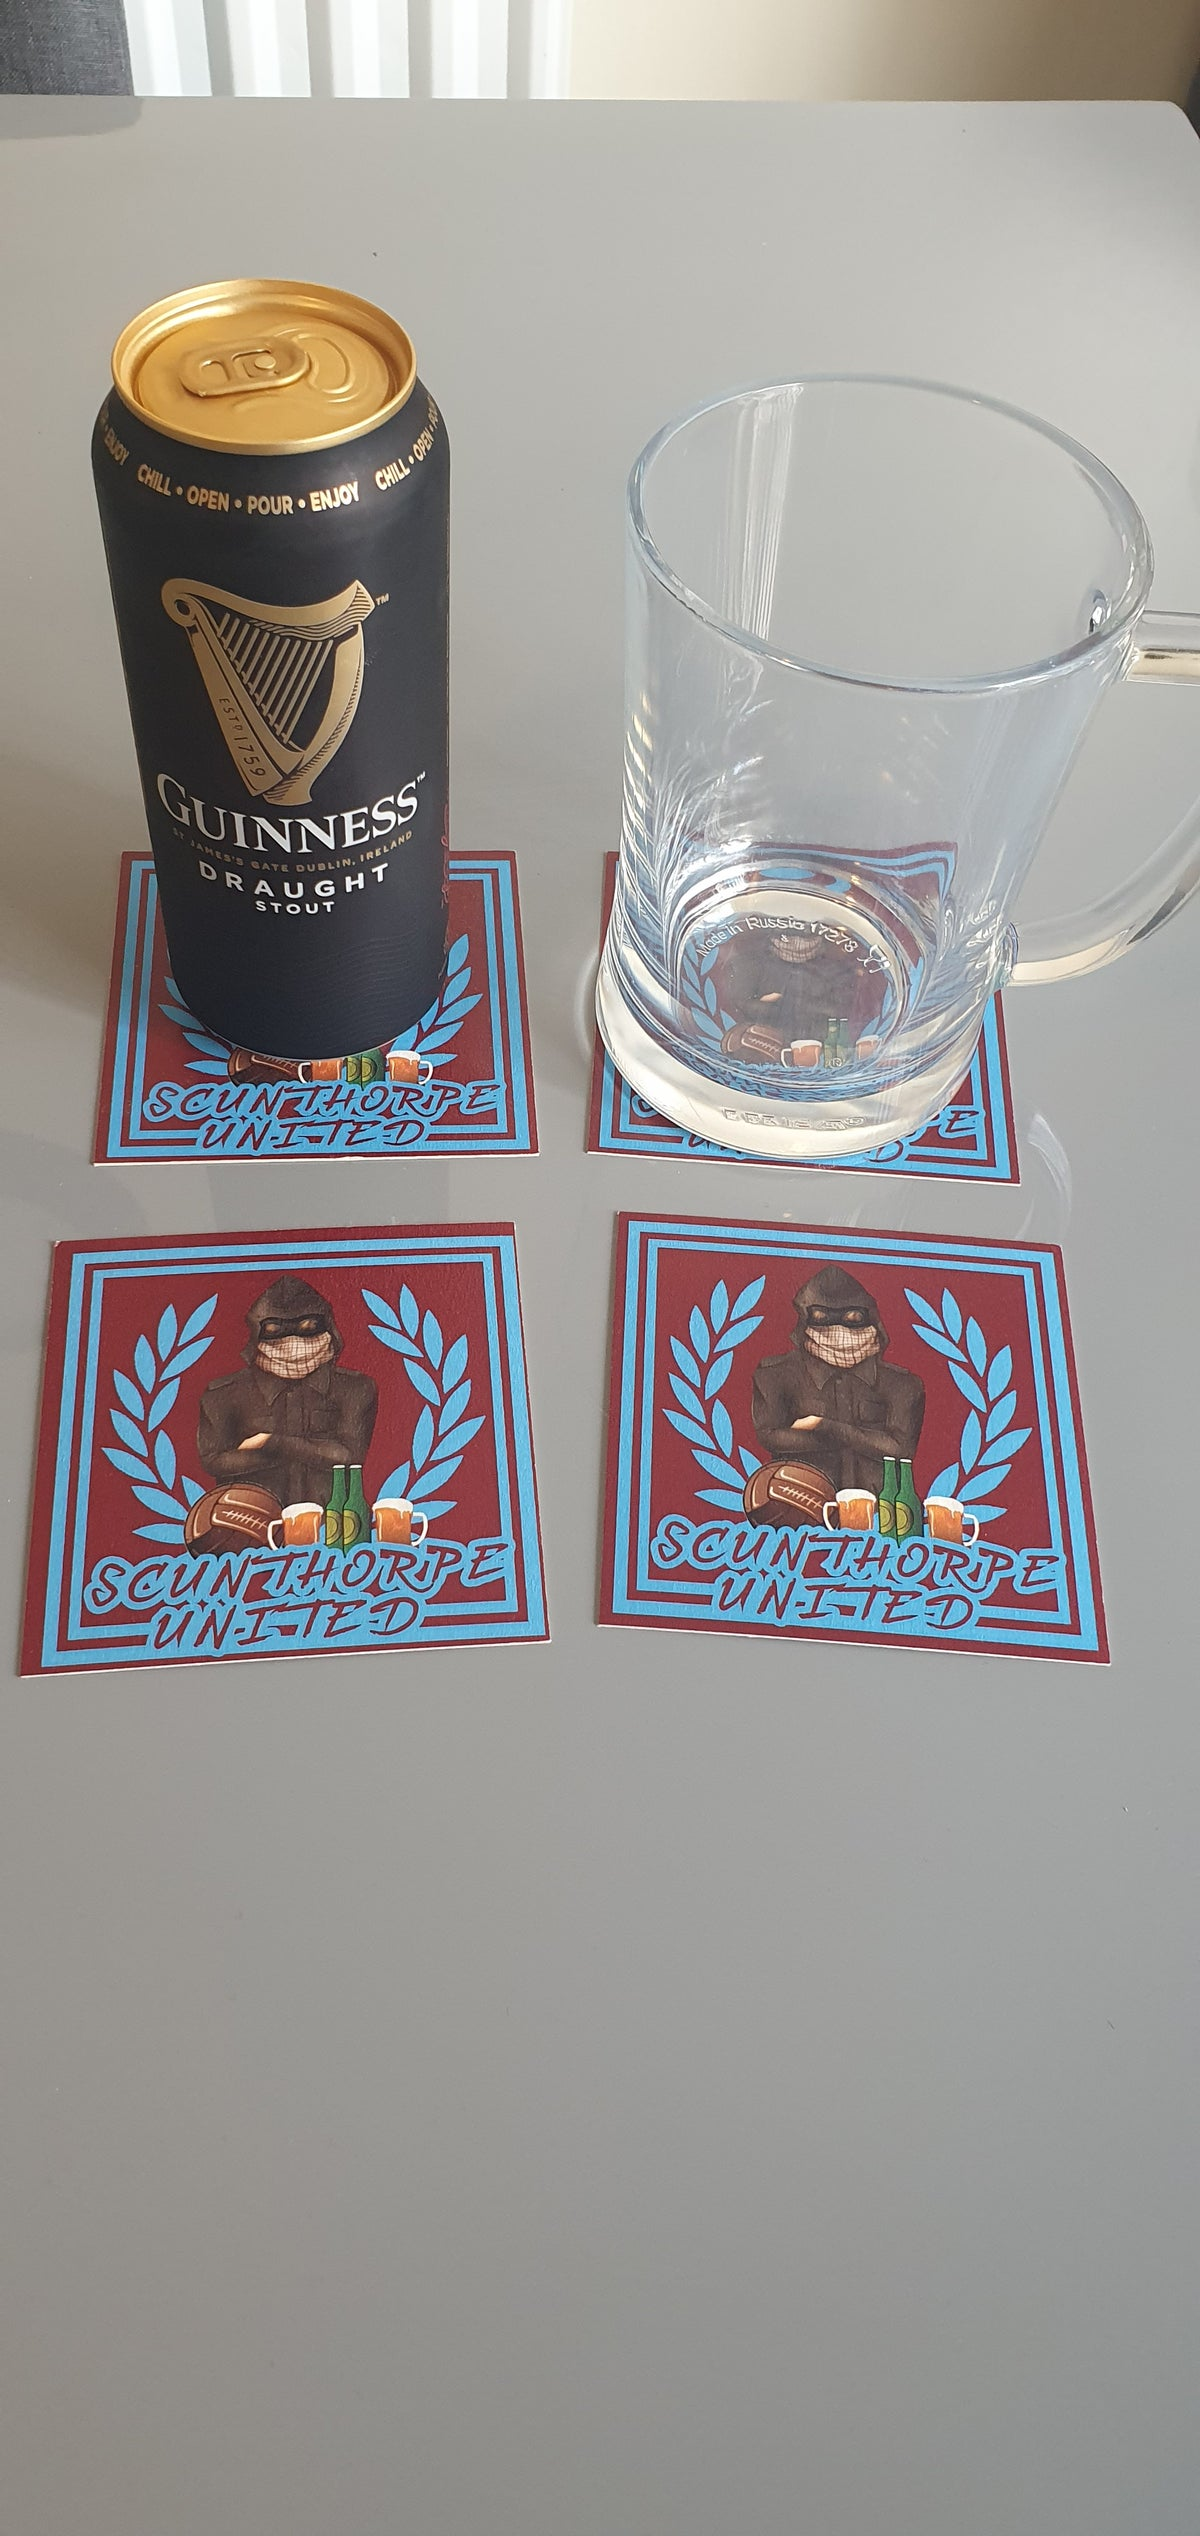 Pack of 10 10x10cm Scunthorpe beer mats.